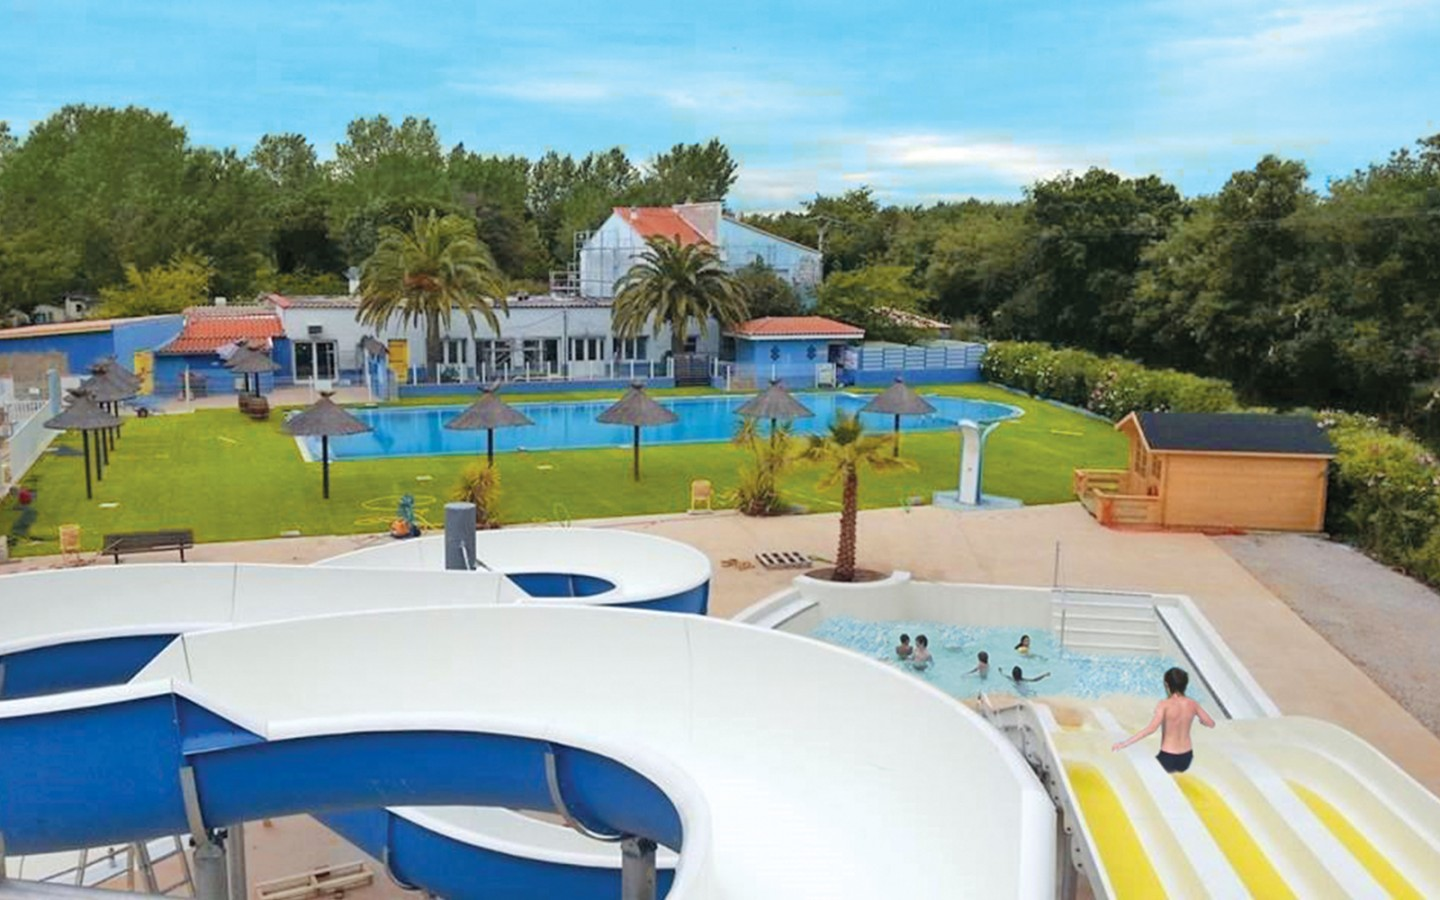 Location camping argeles vacances 4 location vacances for Camping finistere sud bord de mer avec piscine